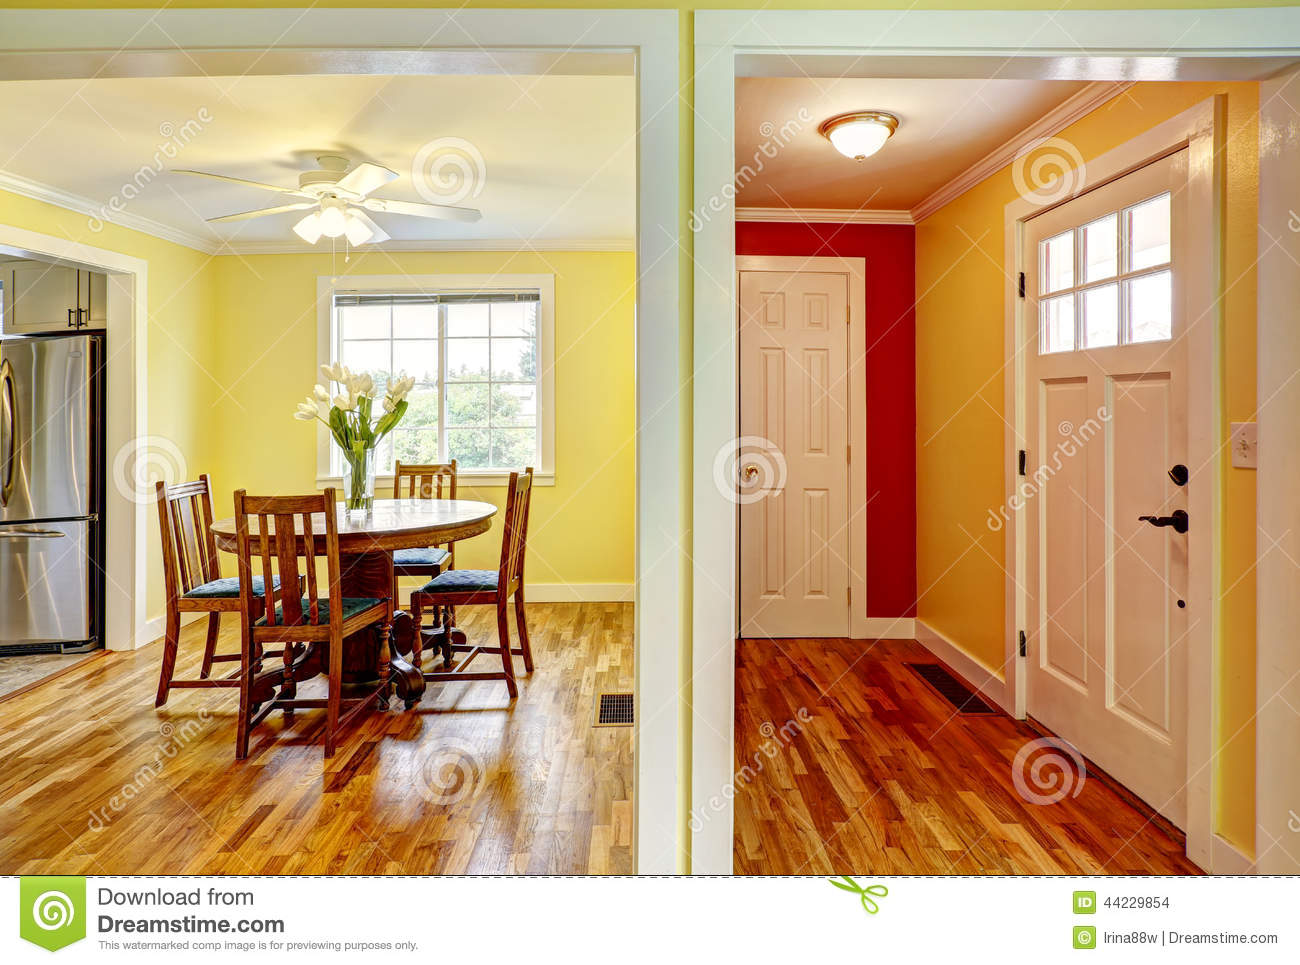 House interior entrance hallway and dining room stock for Dining room entrance ideas